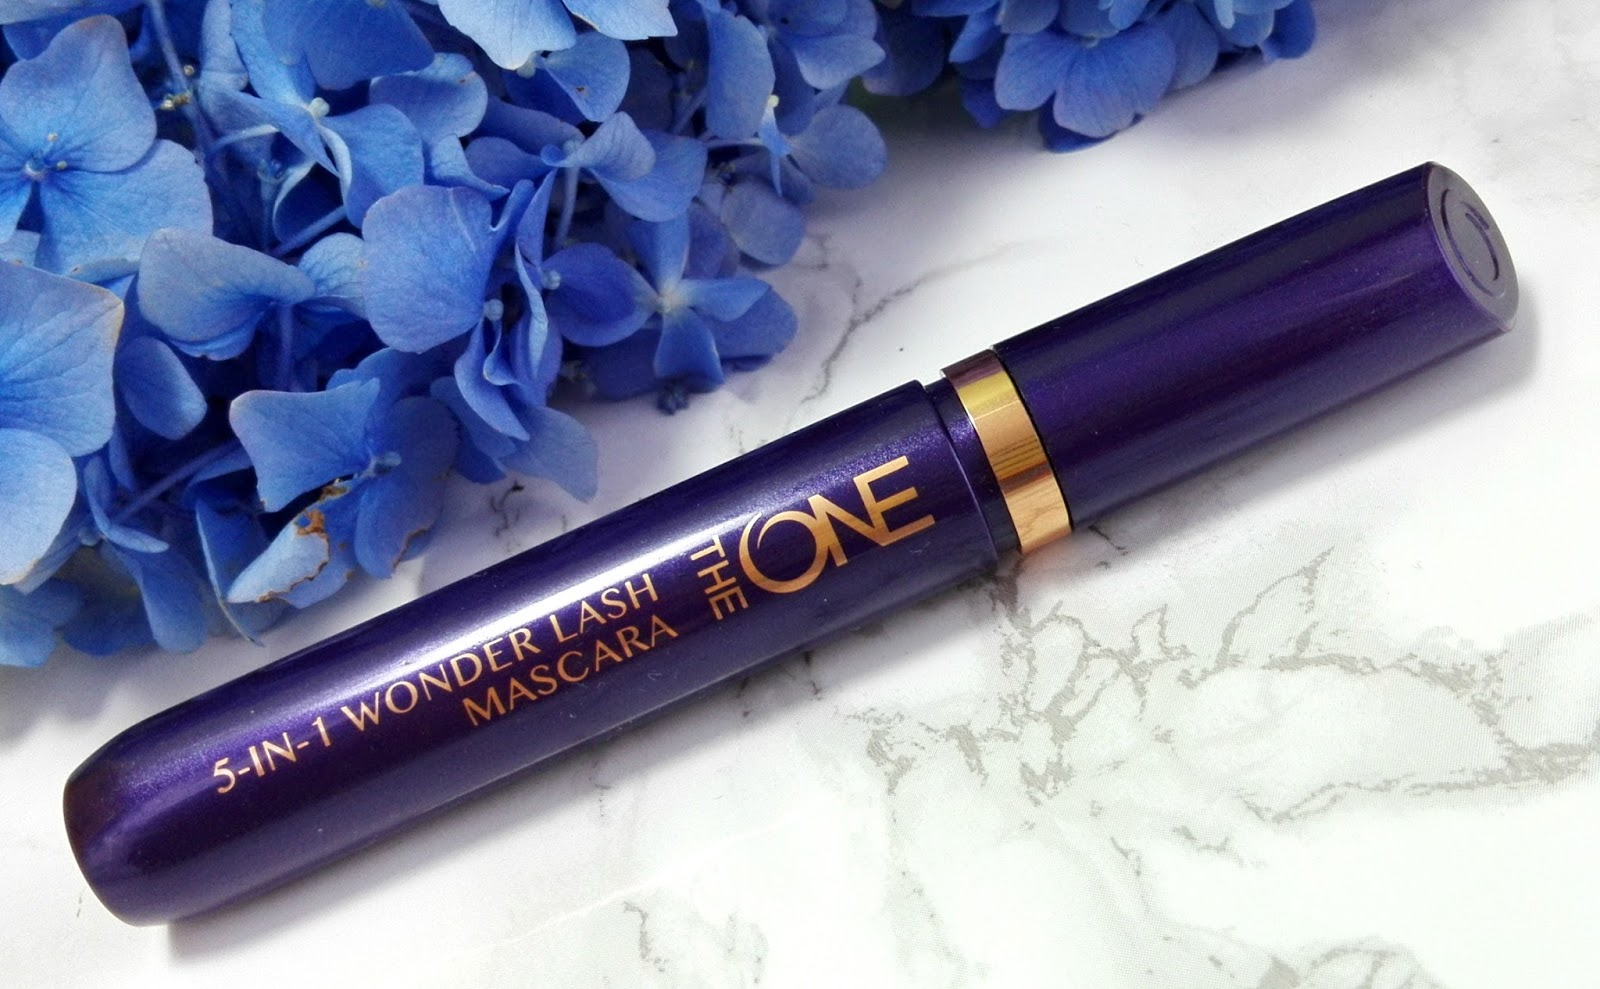 Oriflame The One 5-in-1 Wonder Lash Mascara | Lana Talks